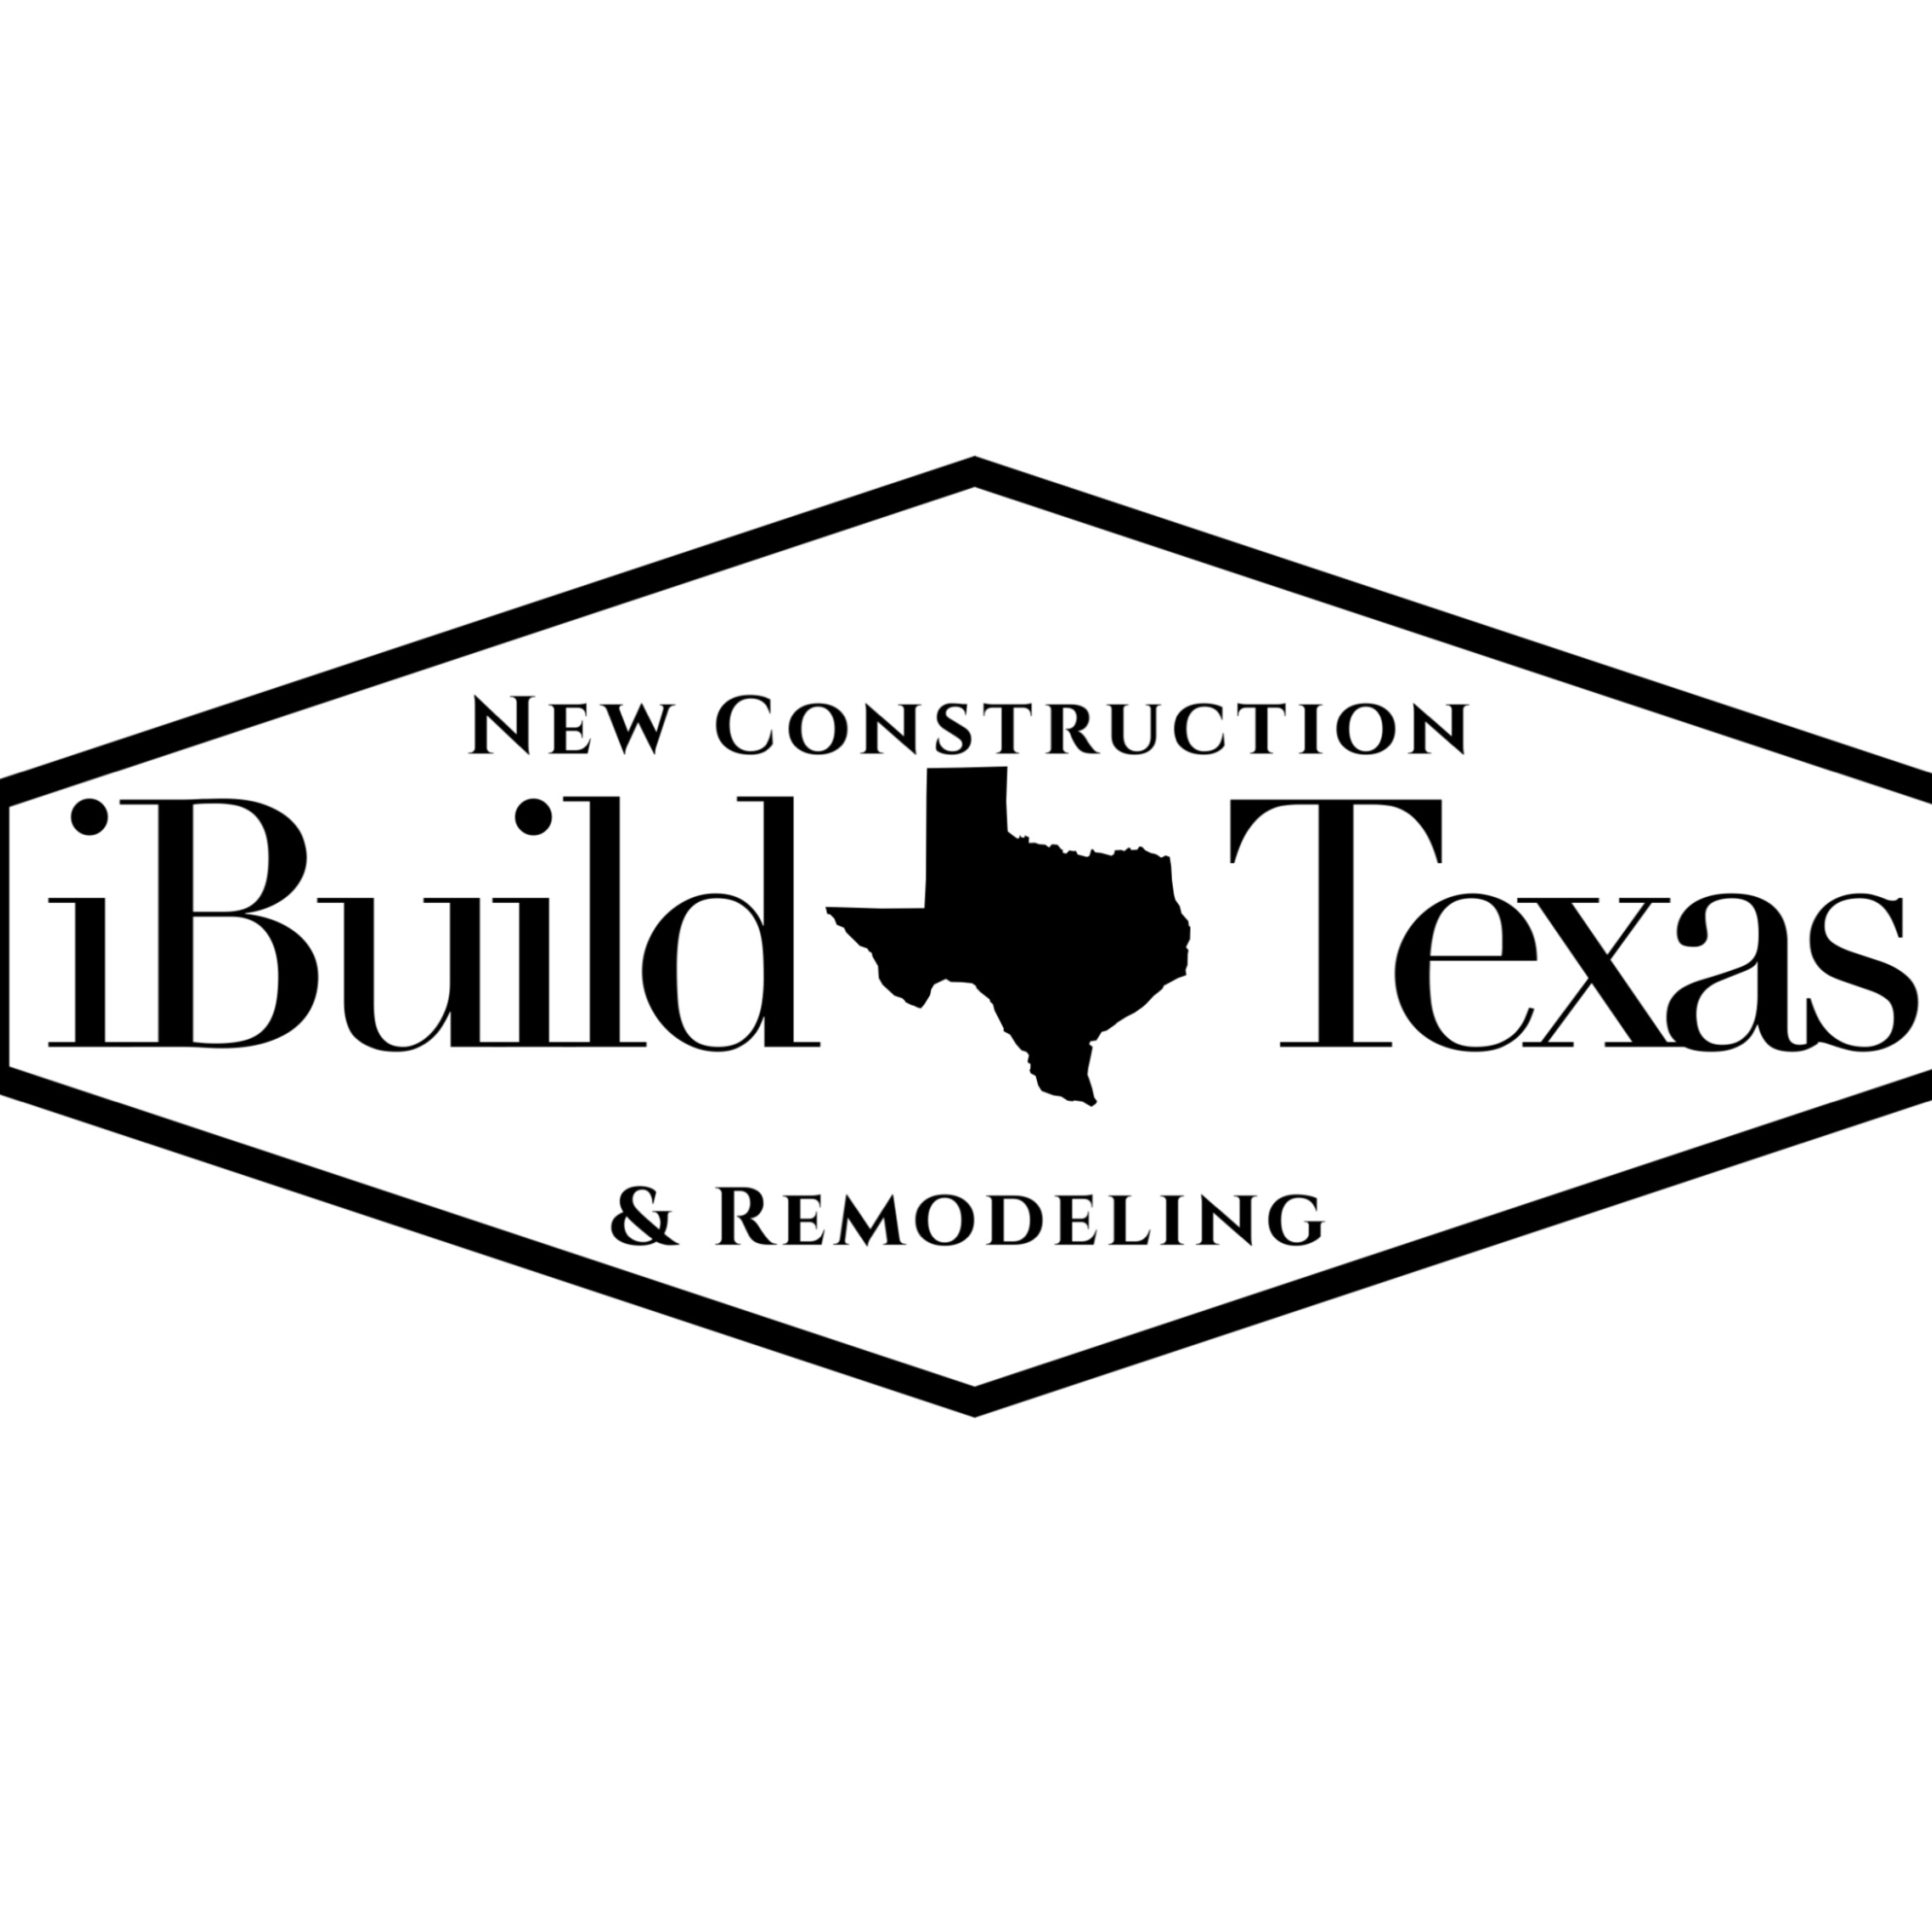 iBuild Texas New Construction and Remodeling, LLC